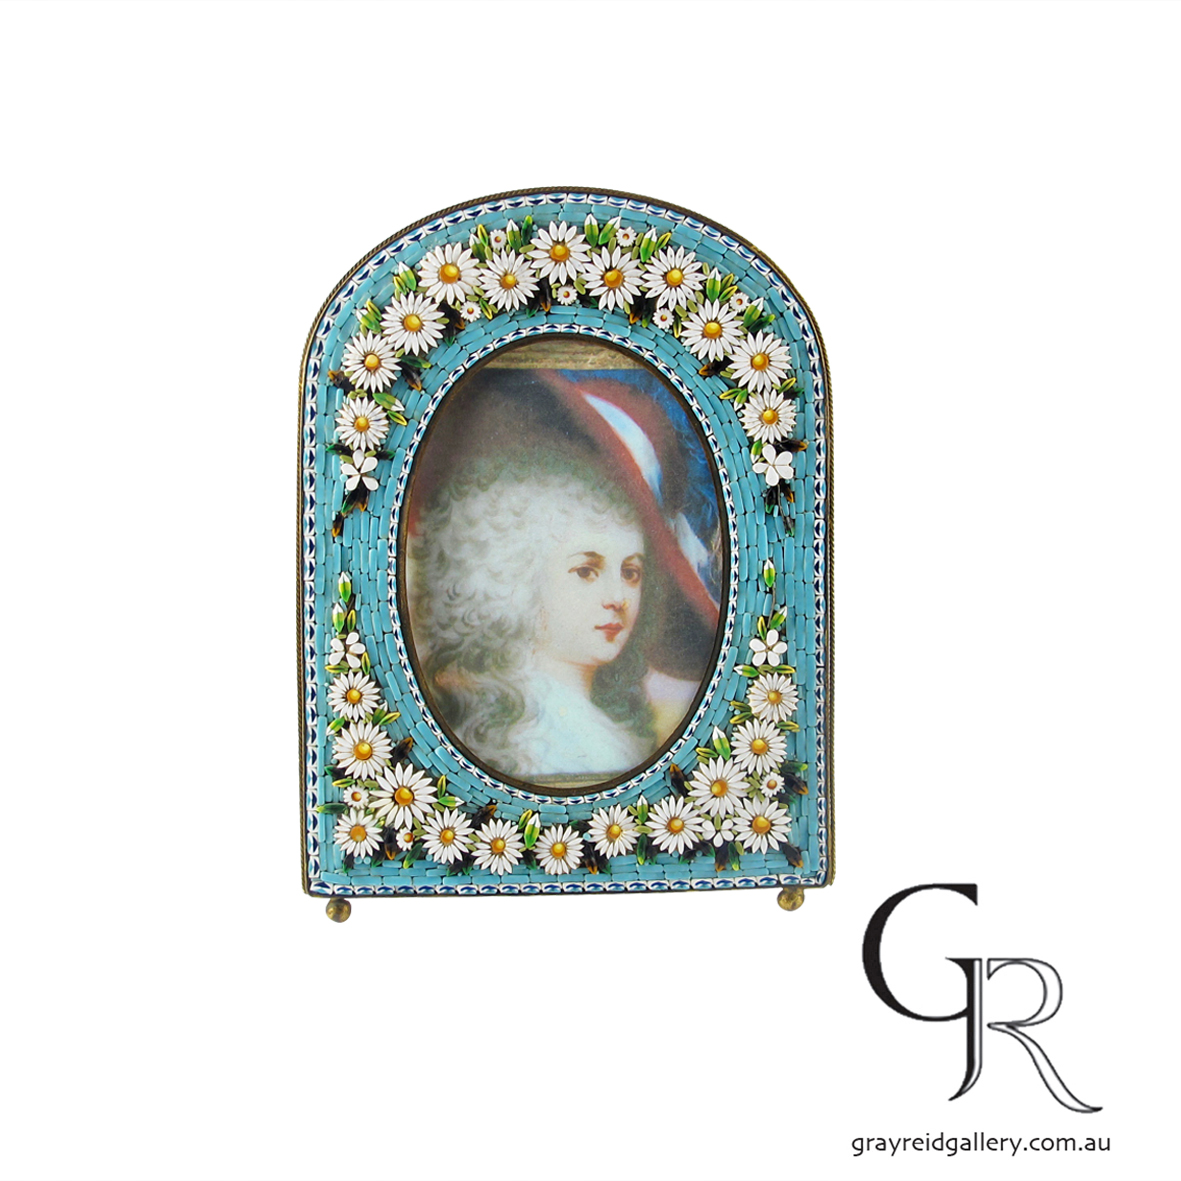 antiques and collectables melbourne micro mosaic picture frame Gray Reid Gallery 3.jpg